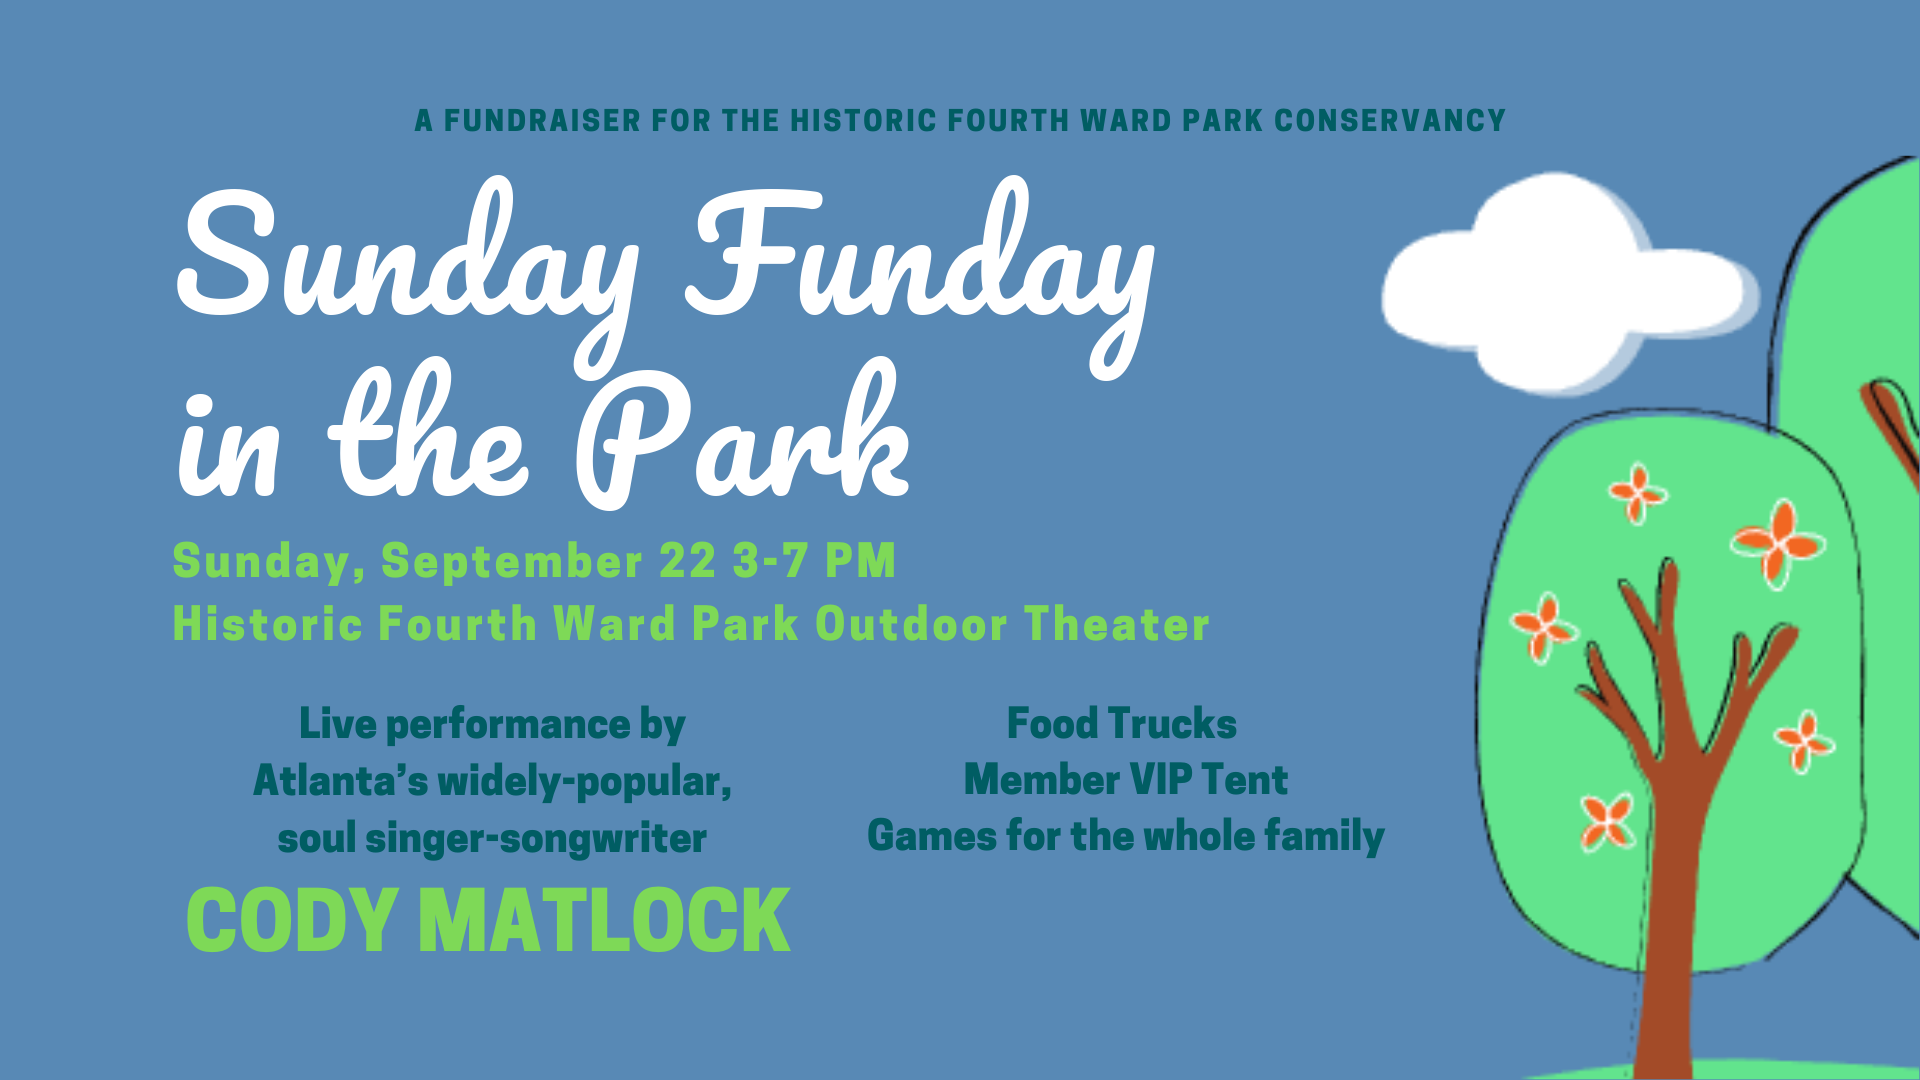 Historic Fourth Ward Park Conservancy